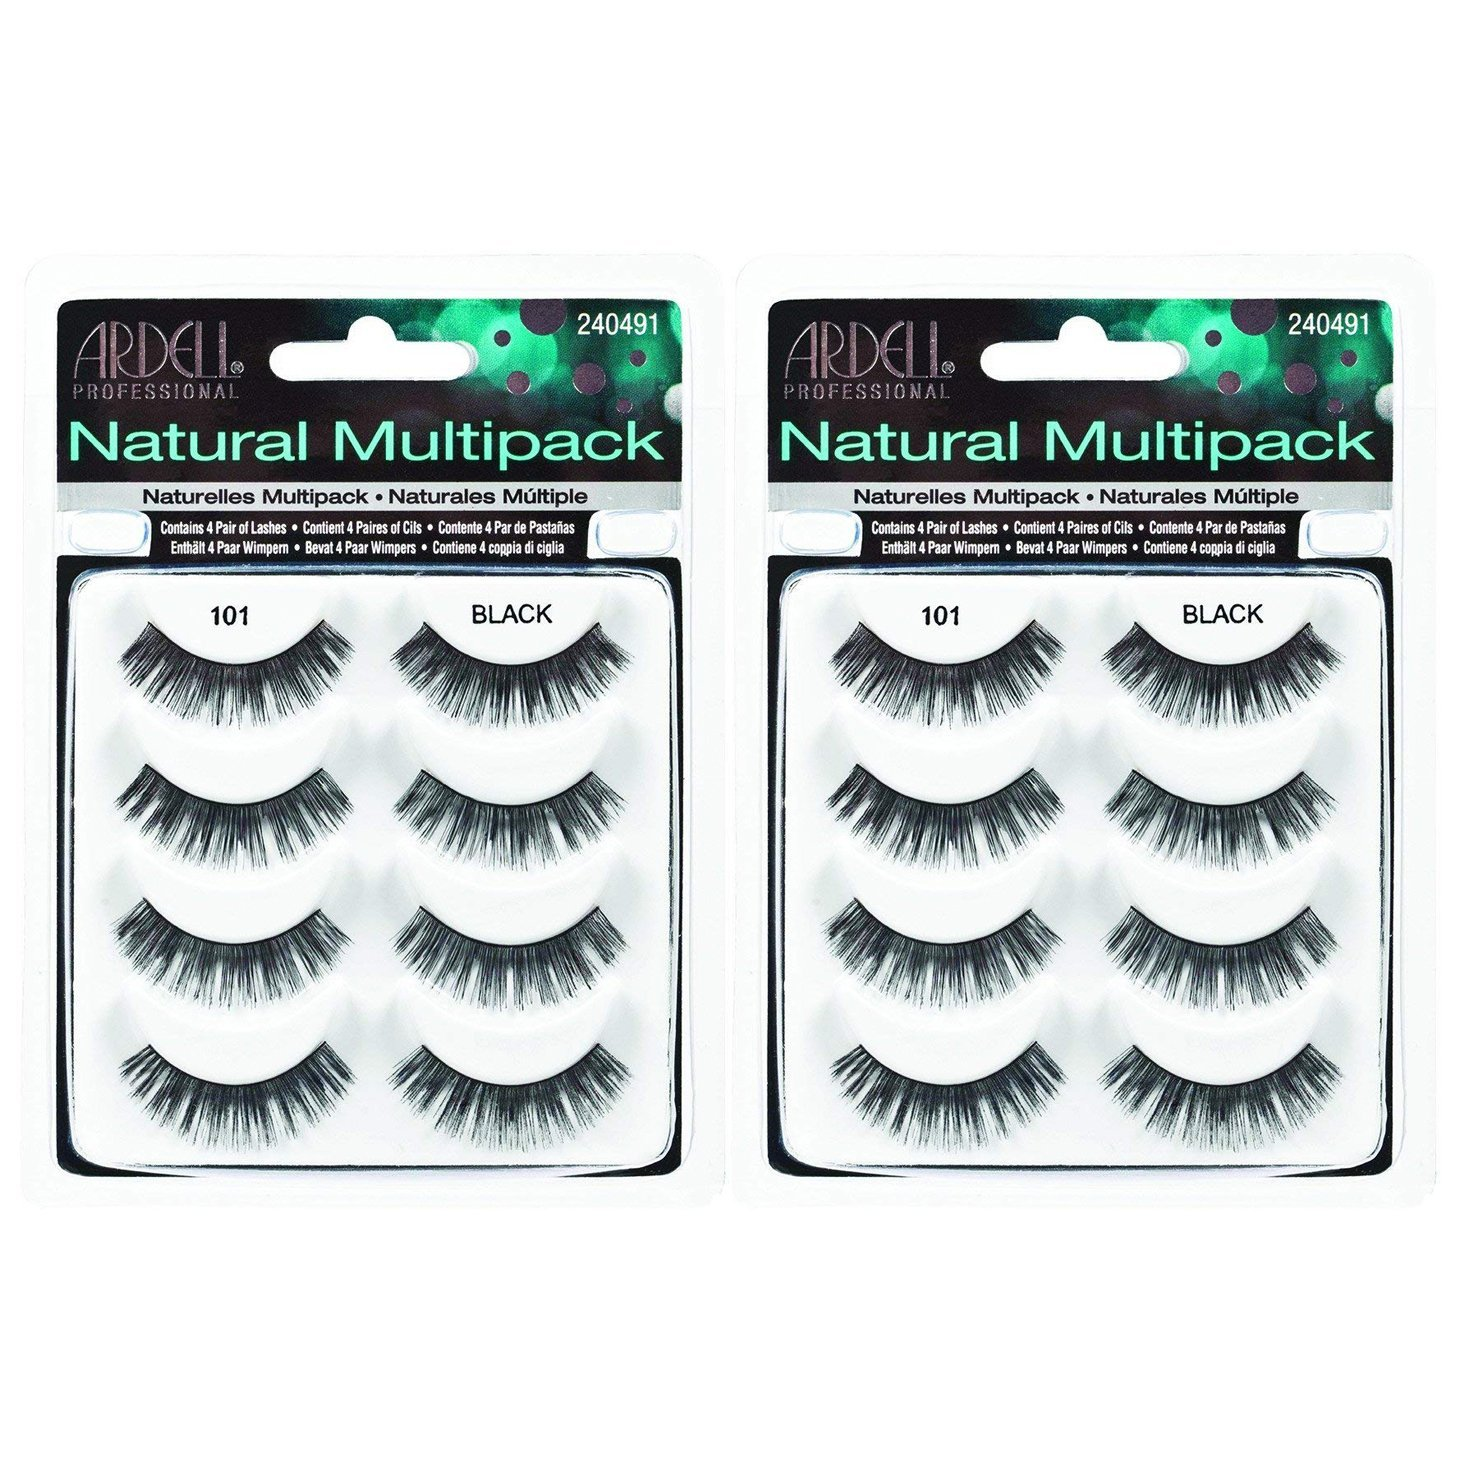 Ardell Natural Multipack Lashes - #101 Black (Pack of 2)